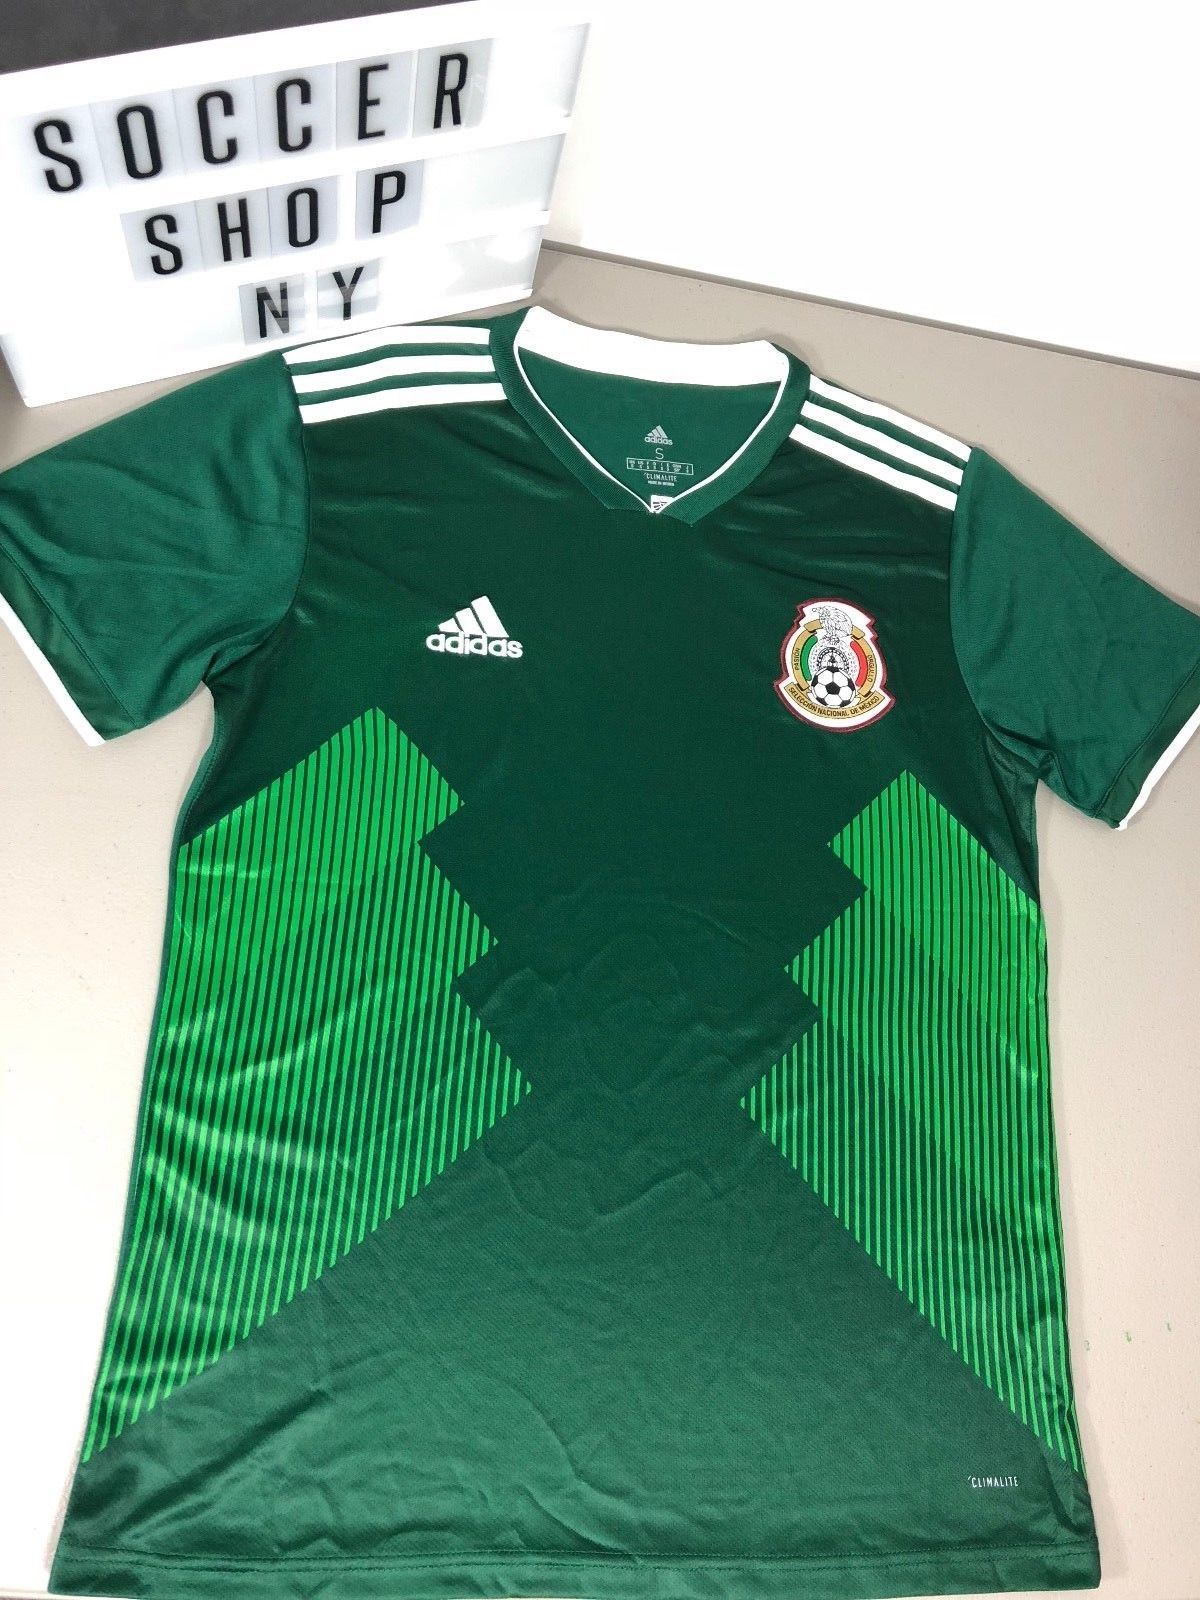 9e2da100 Adidas Mens Mexico Home Jersey World Cup 2018 Small Medium BQ4701 Discount  Price 62.99 Free Shipping Buy it Now